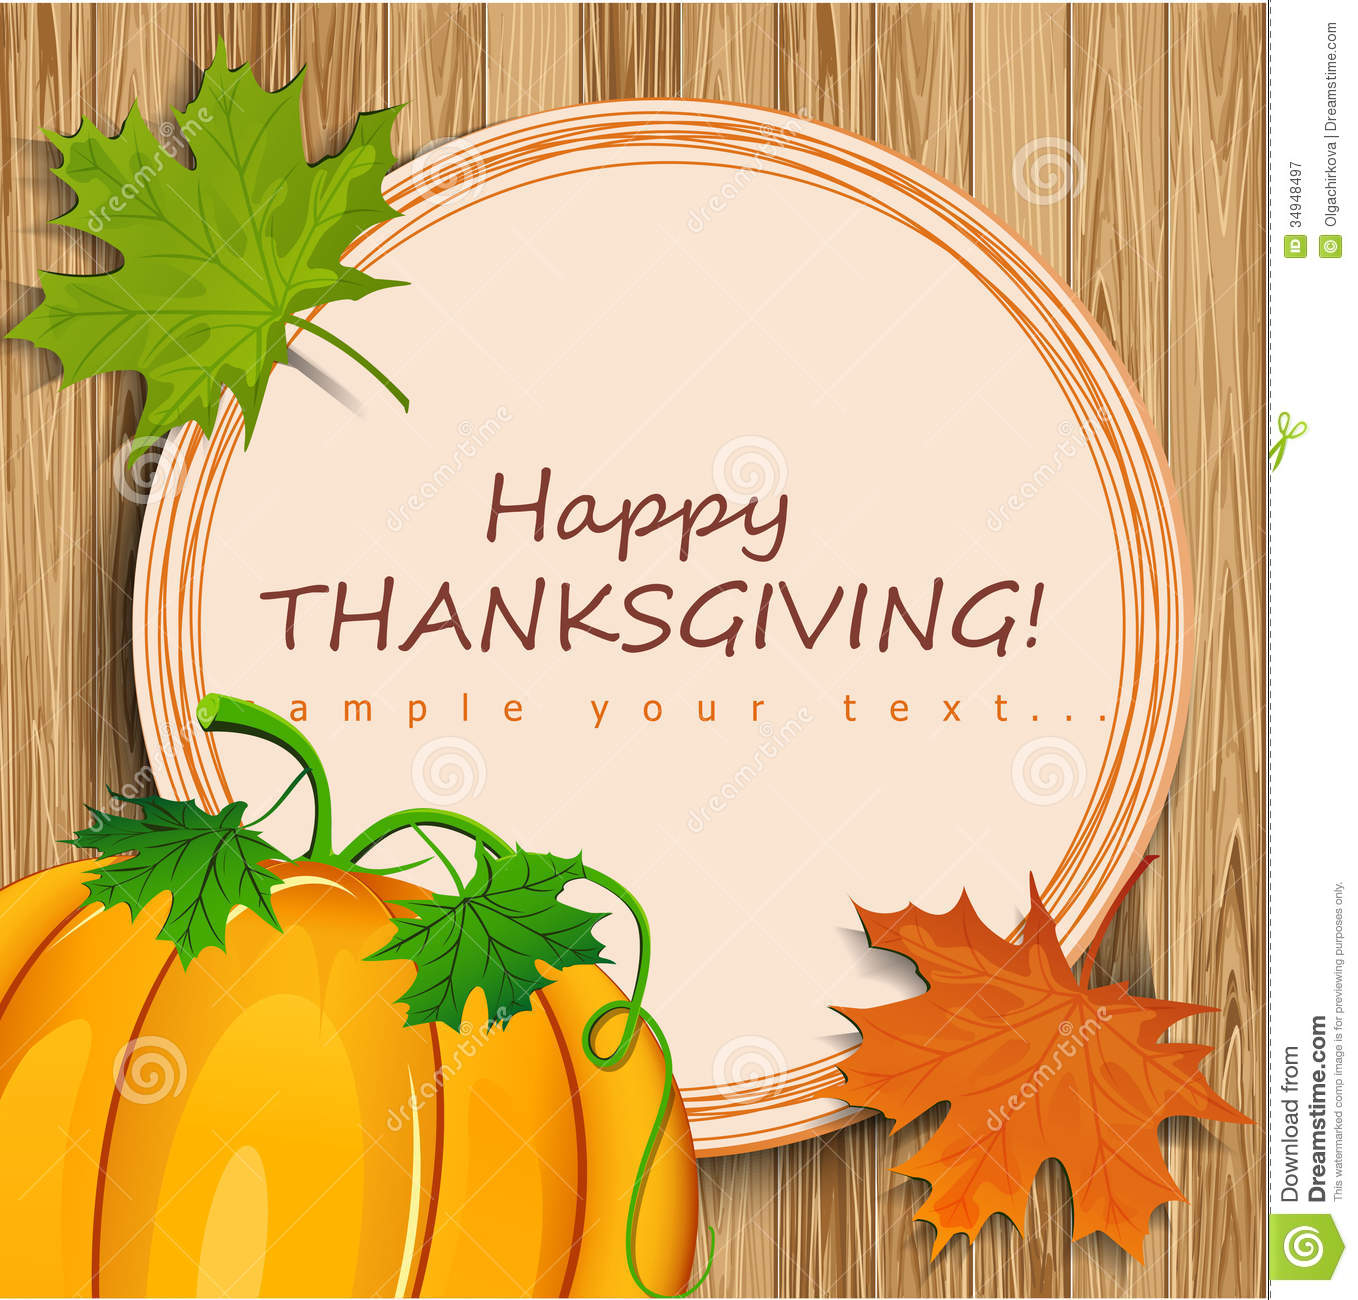 Thanksgiving Card Royalty Free Stock Photography Image